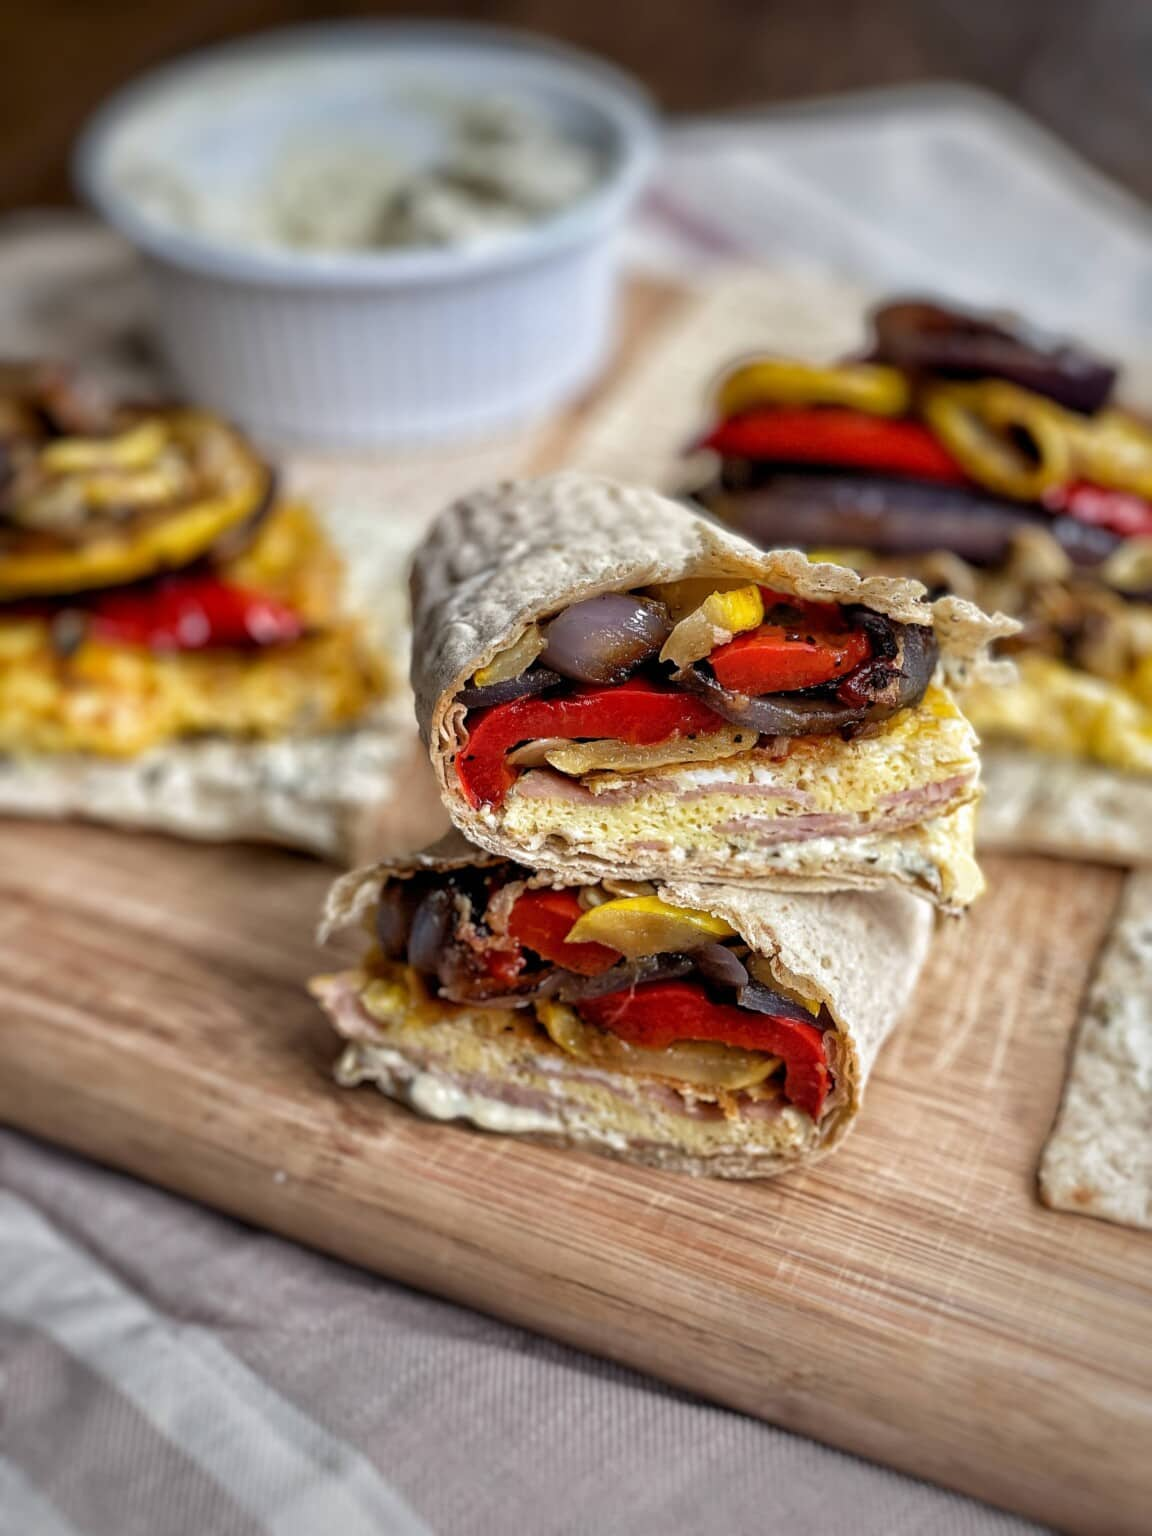 Grilled Vegetable and Egg Wraps